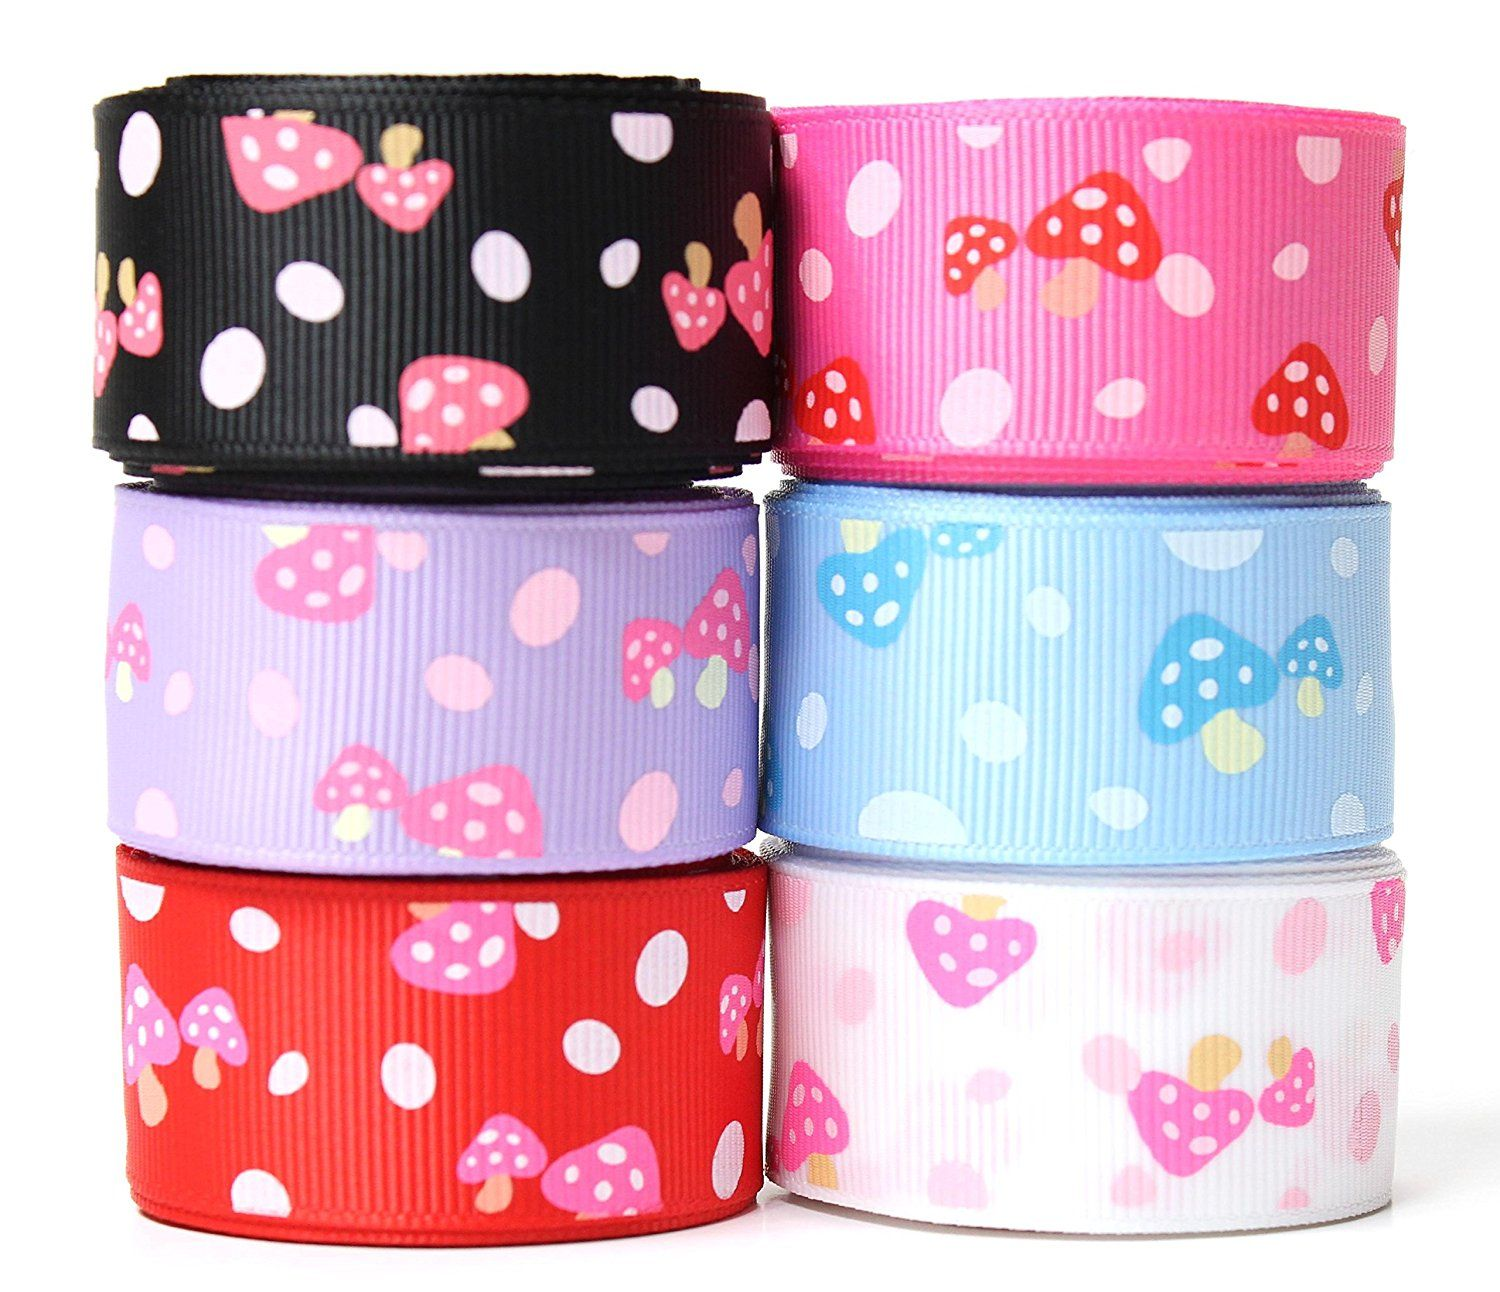 Accufashion 1 Inch 6 colors 30Yds (6×5yds) Mushroom Grosgrain Ribbon Combo >>> Check out the image by visiting the link.